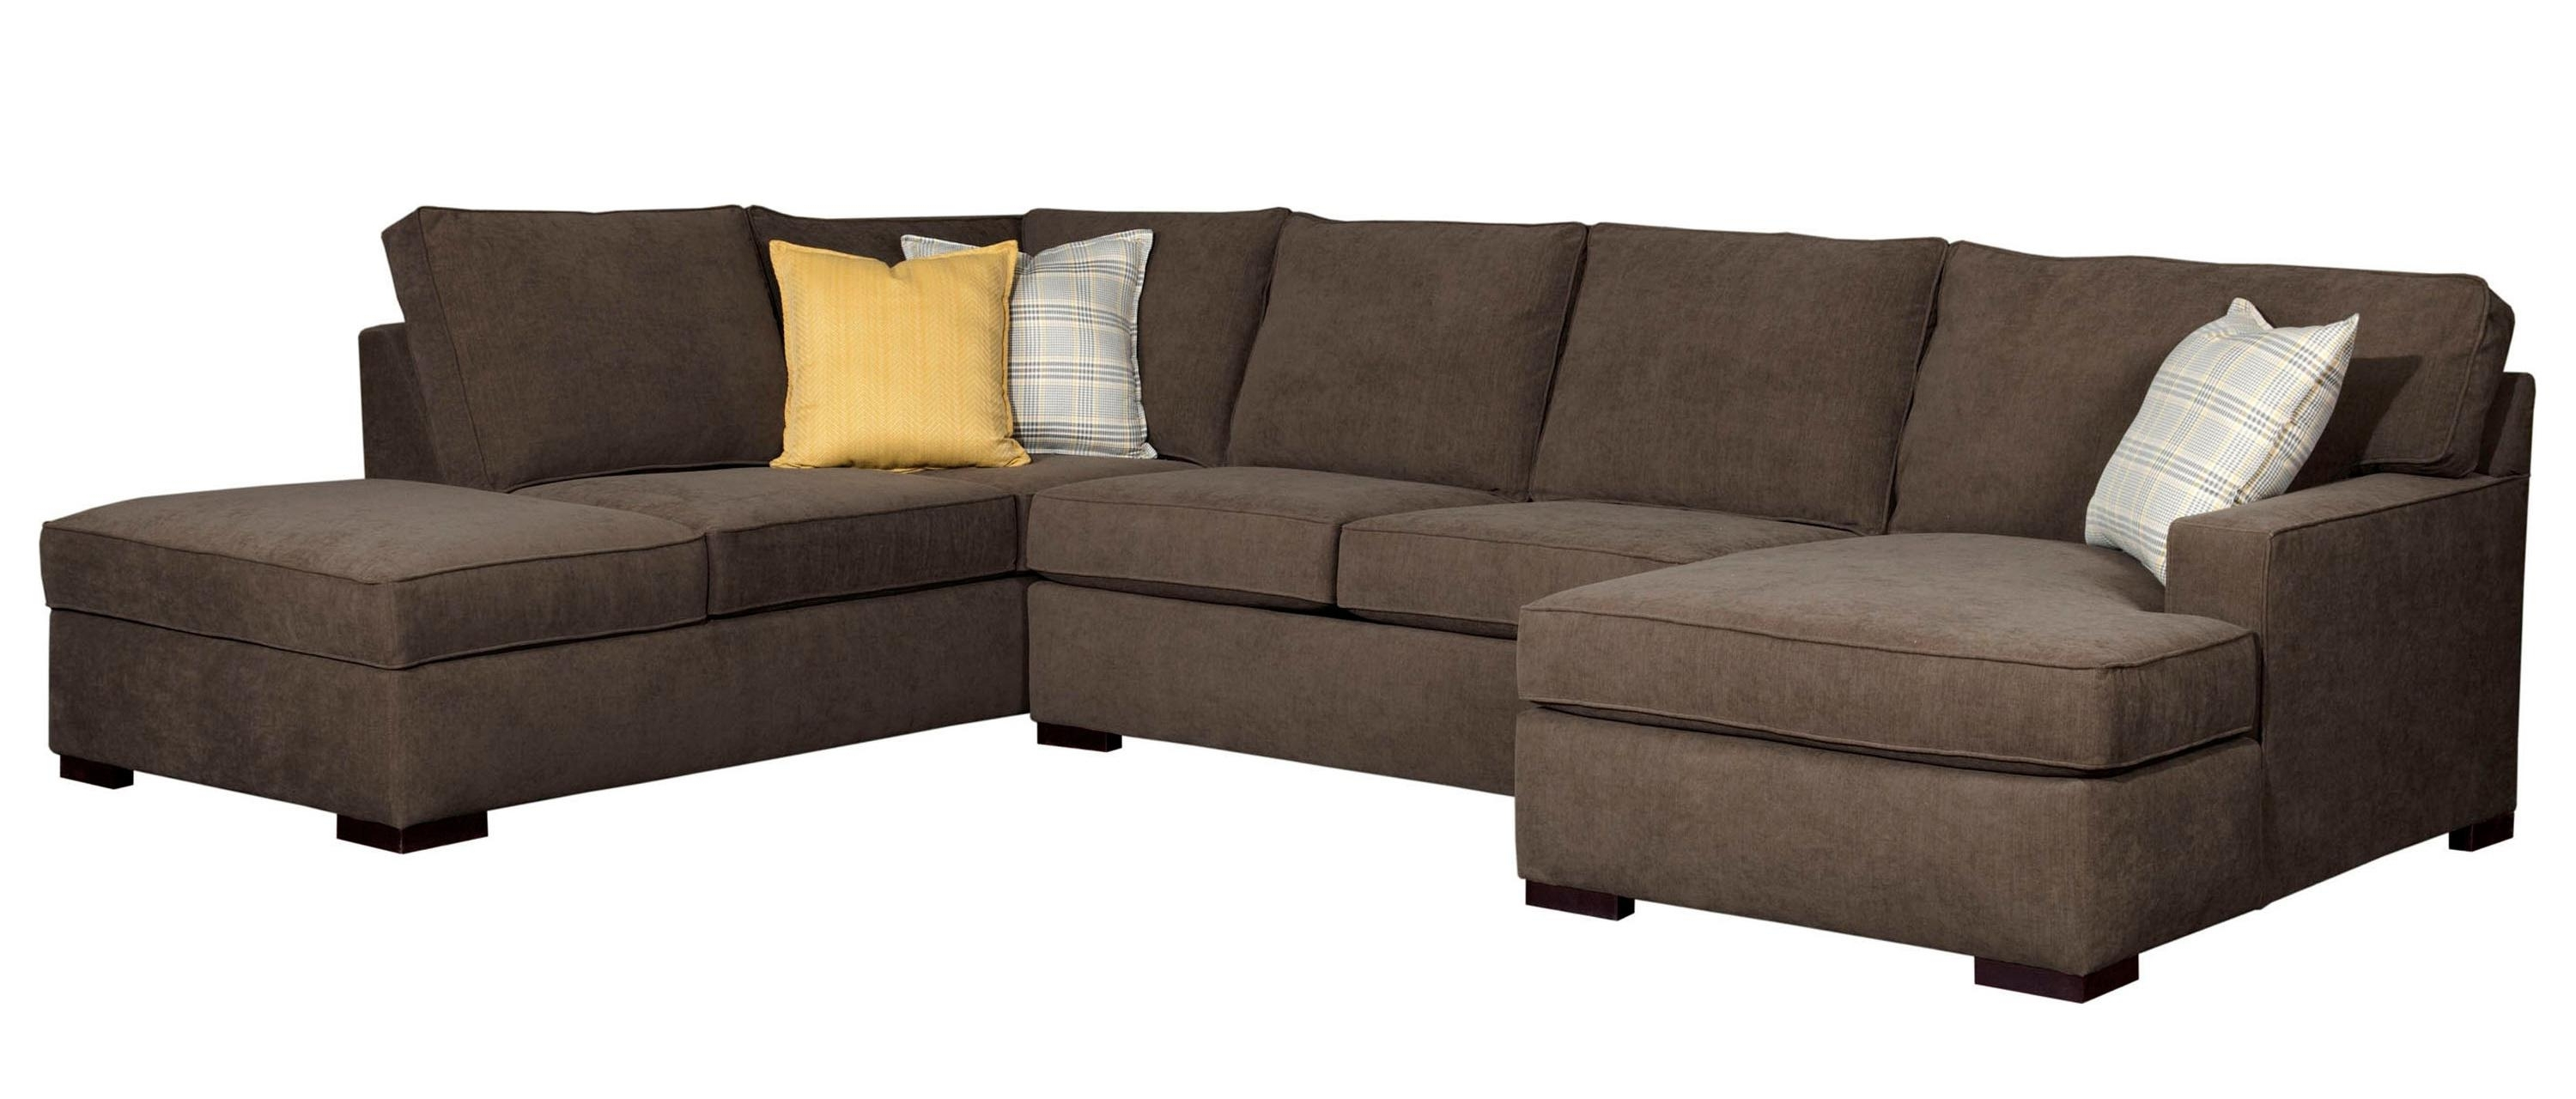 Most Up To Date Sectional Sofas At Broyhill Throughout Broyhill Furniture Raphael Contemporary Sectional Sofa With Laf (View 10 of 20)